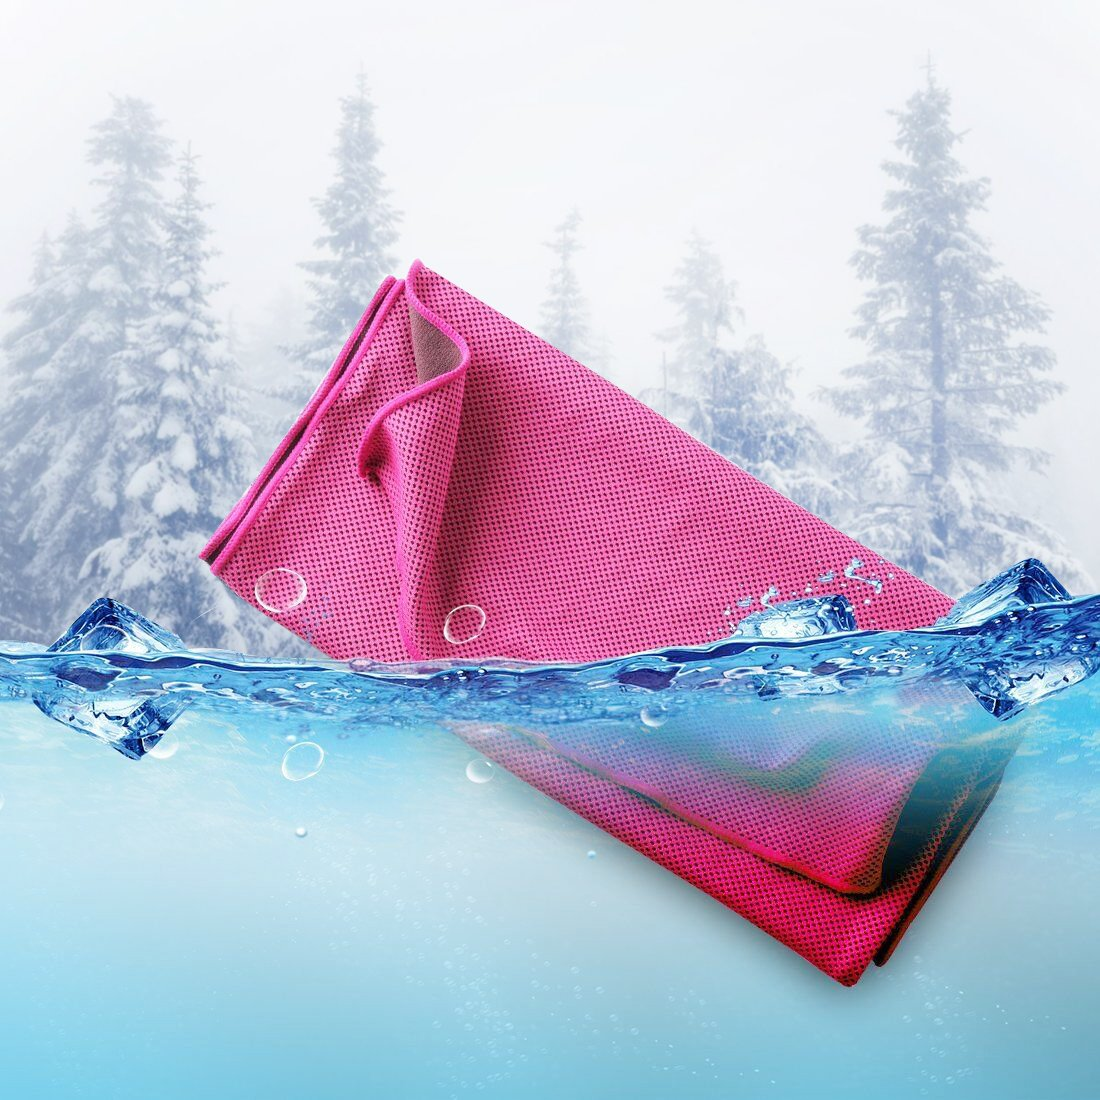 Parasky Cooling Towel,Soft Breathable Chilly Towel,Microfiber Cooling Towel for Sports, Camping,Gym Workout, Yoga, Chilling Neck Wrap, Instant Chilling Cold Towels,Ice Cold Scarf for Men Women (Red)